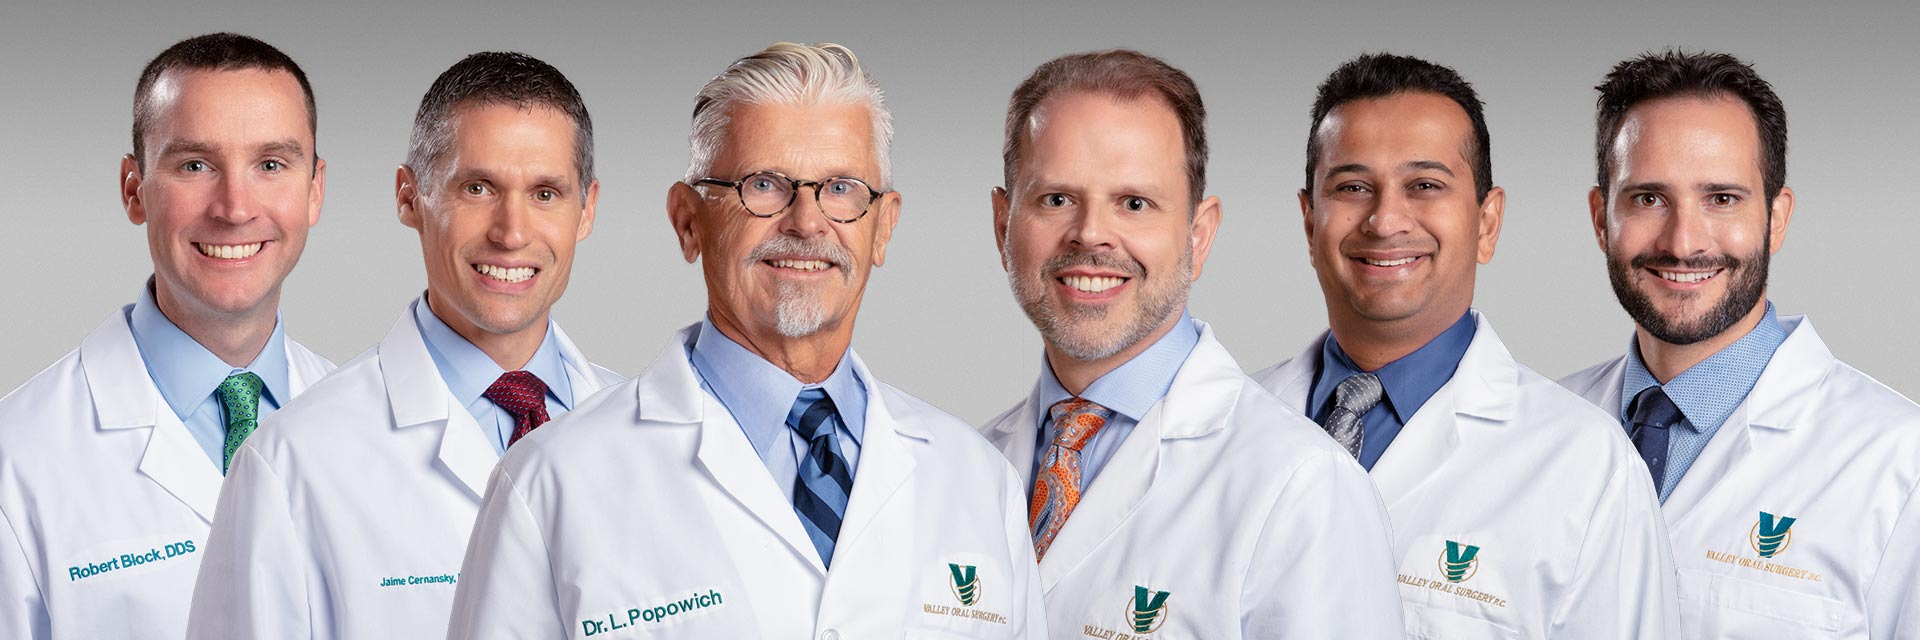 Oral surgery, wisdom tooth removal, and dental implants by Valley Oral Surgery, serving Lehigh Valley and Mahoning Valley from offices in Allentown, Bethlehem and Lehighton.